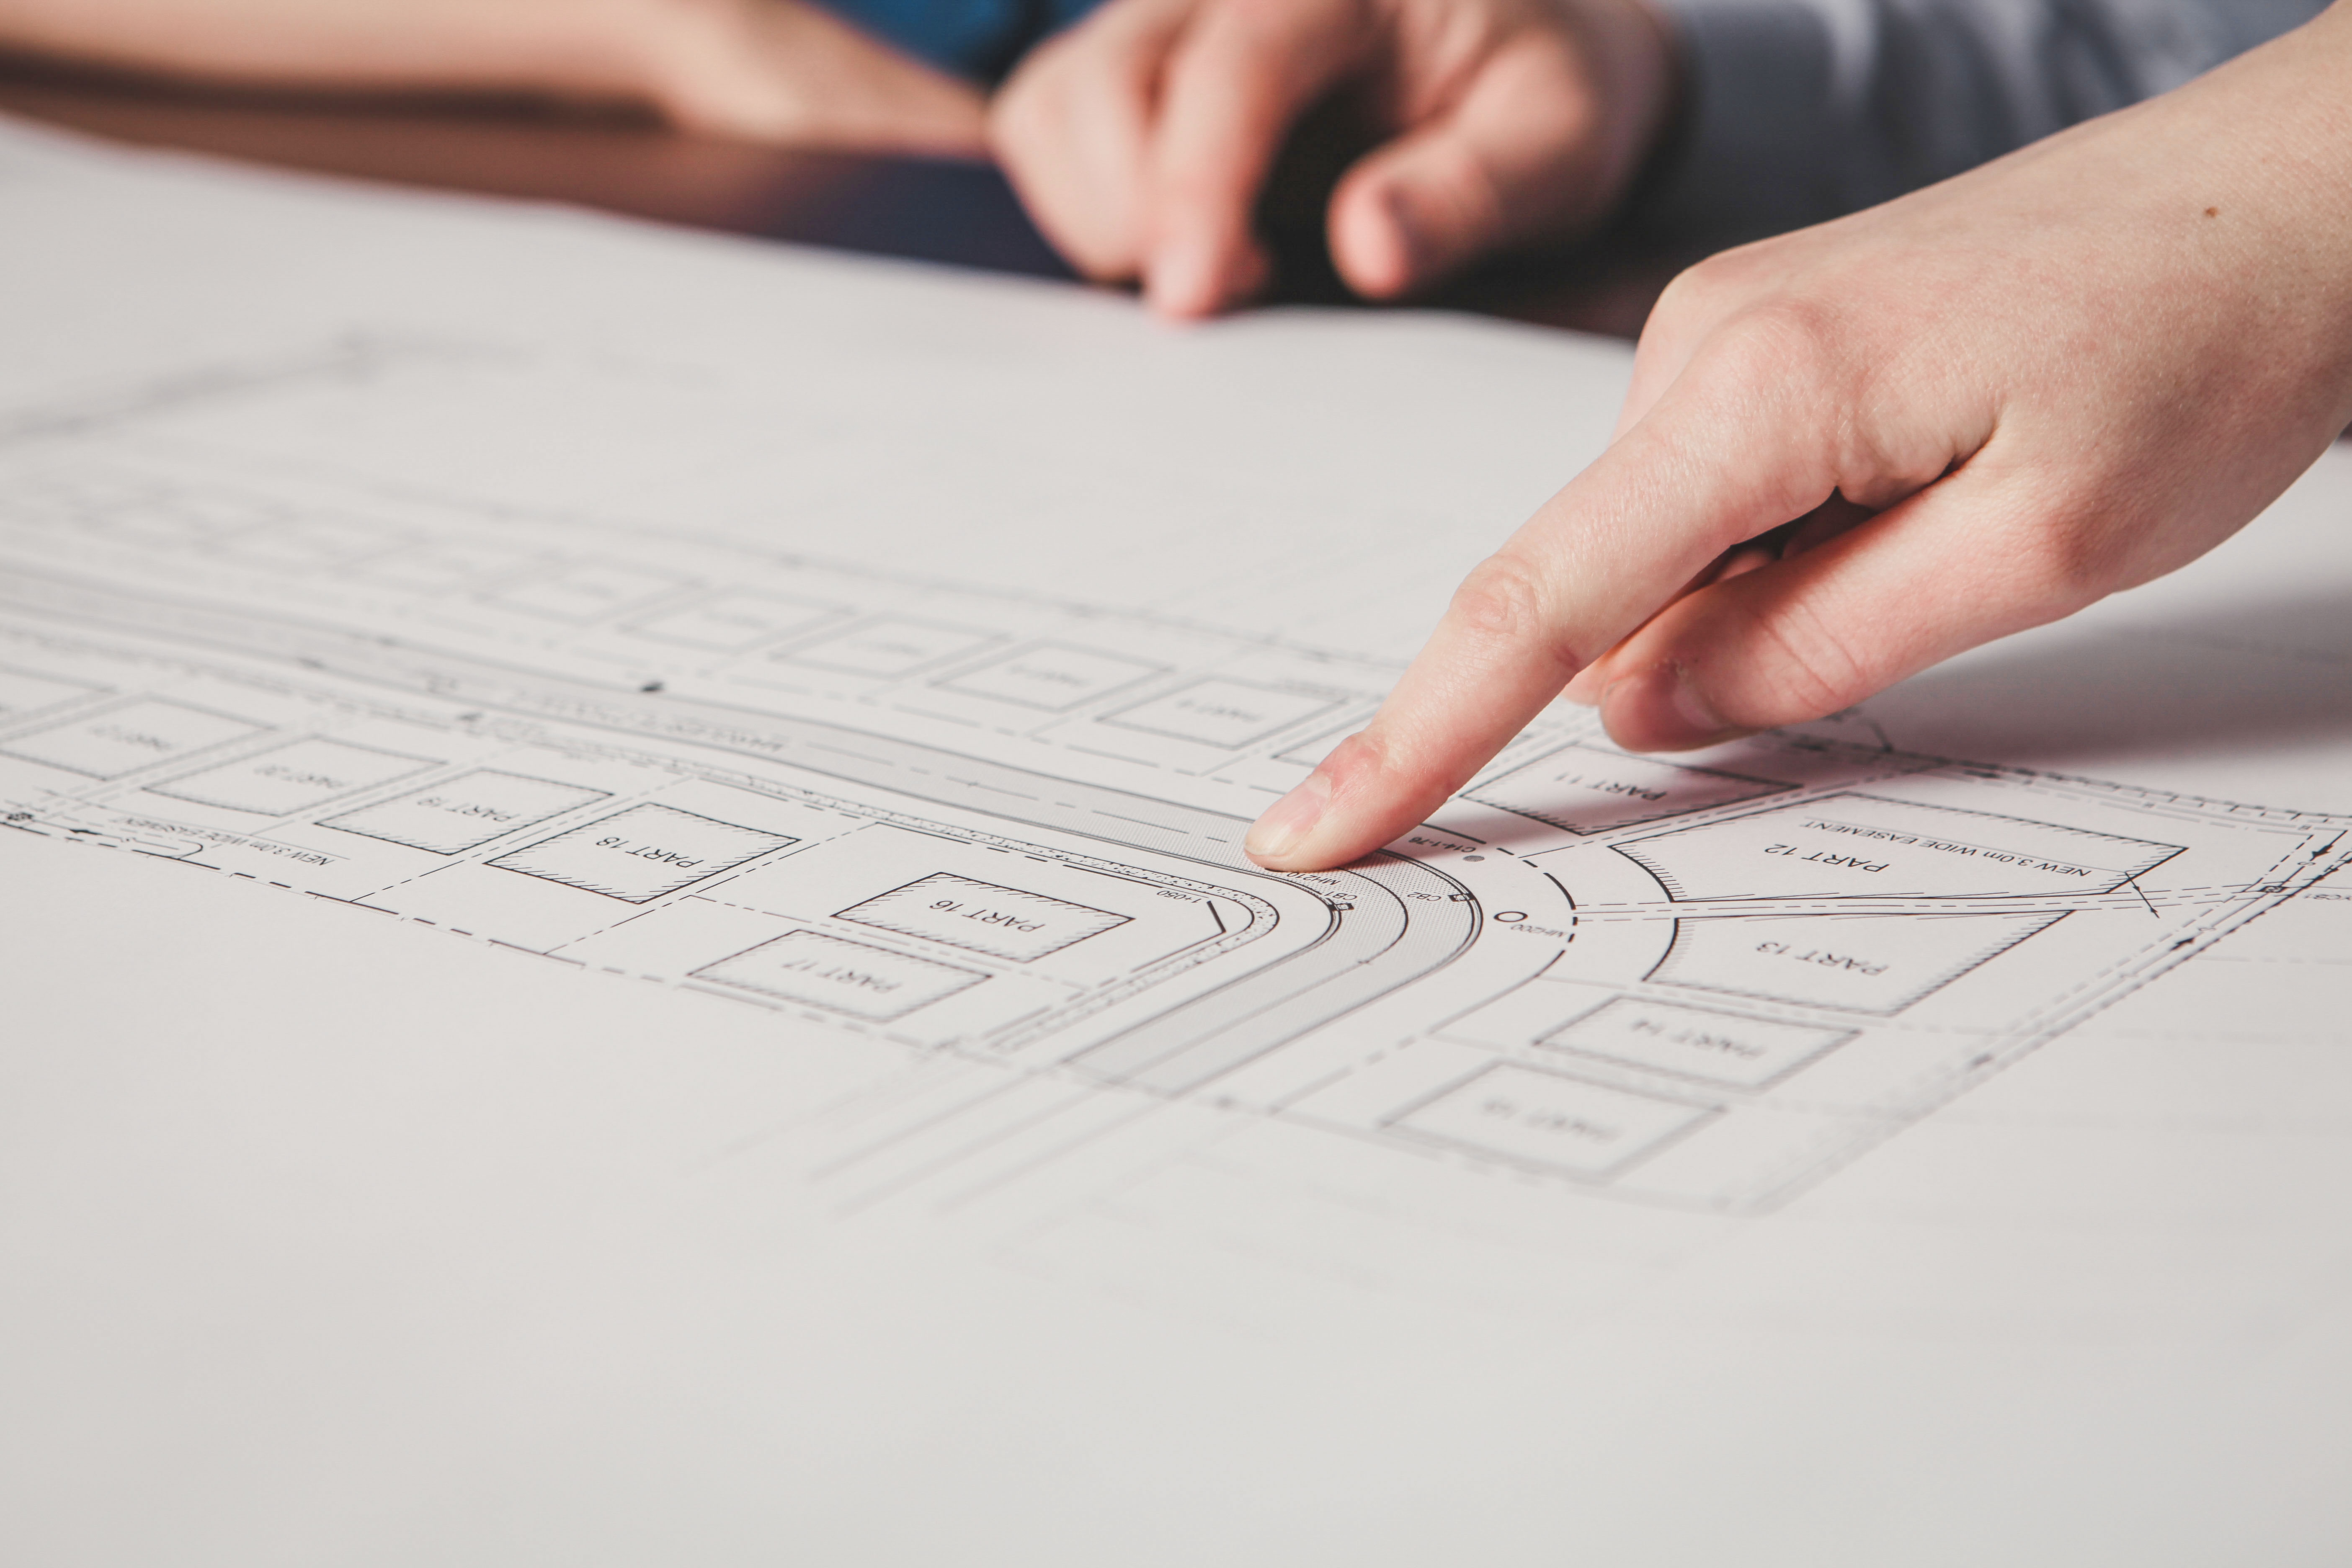 Close-up of finger pointing at Engineering plans